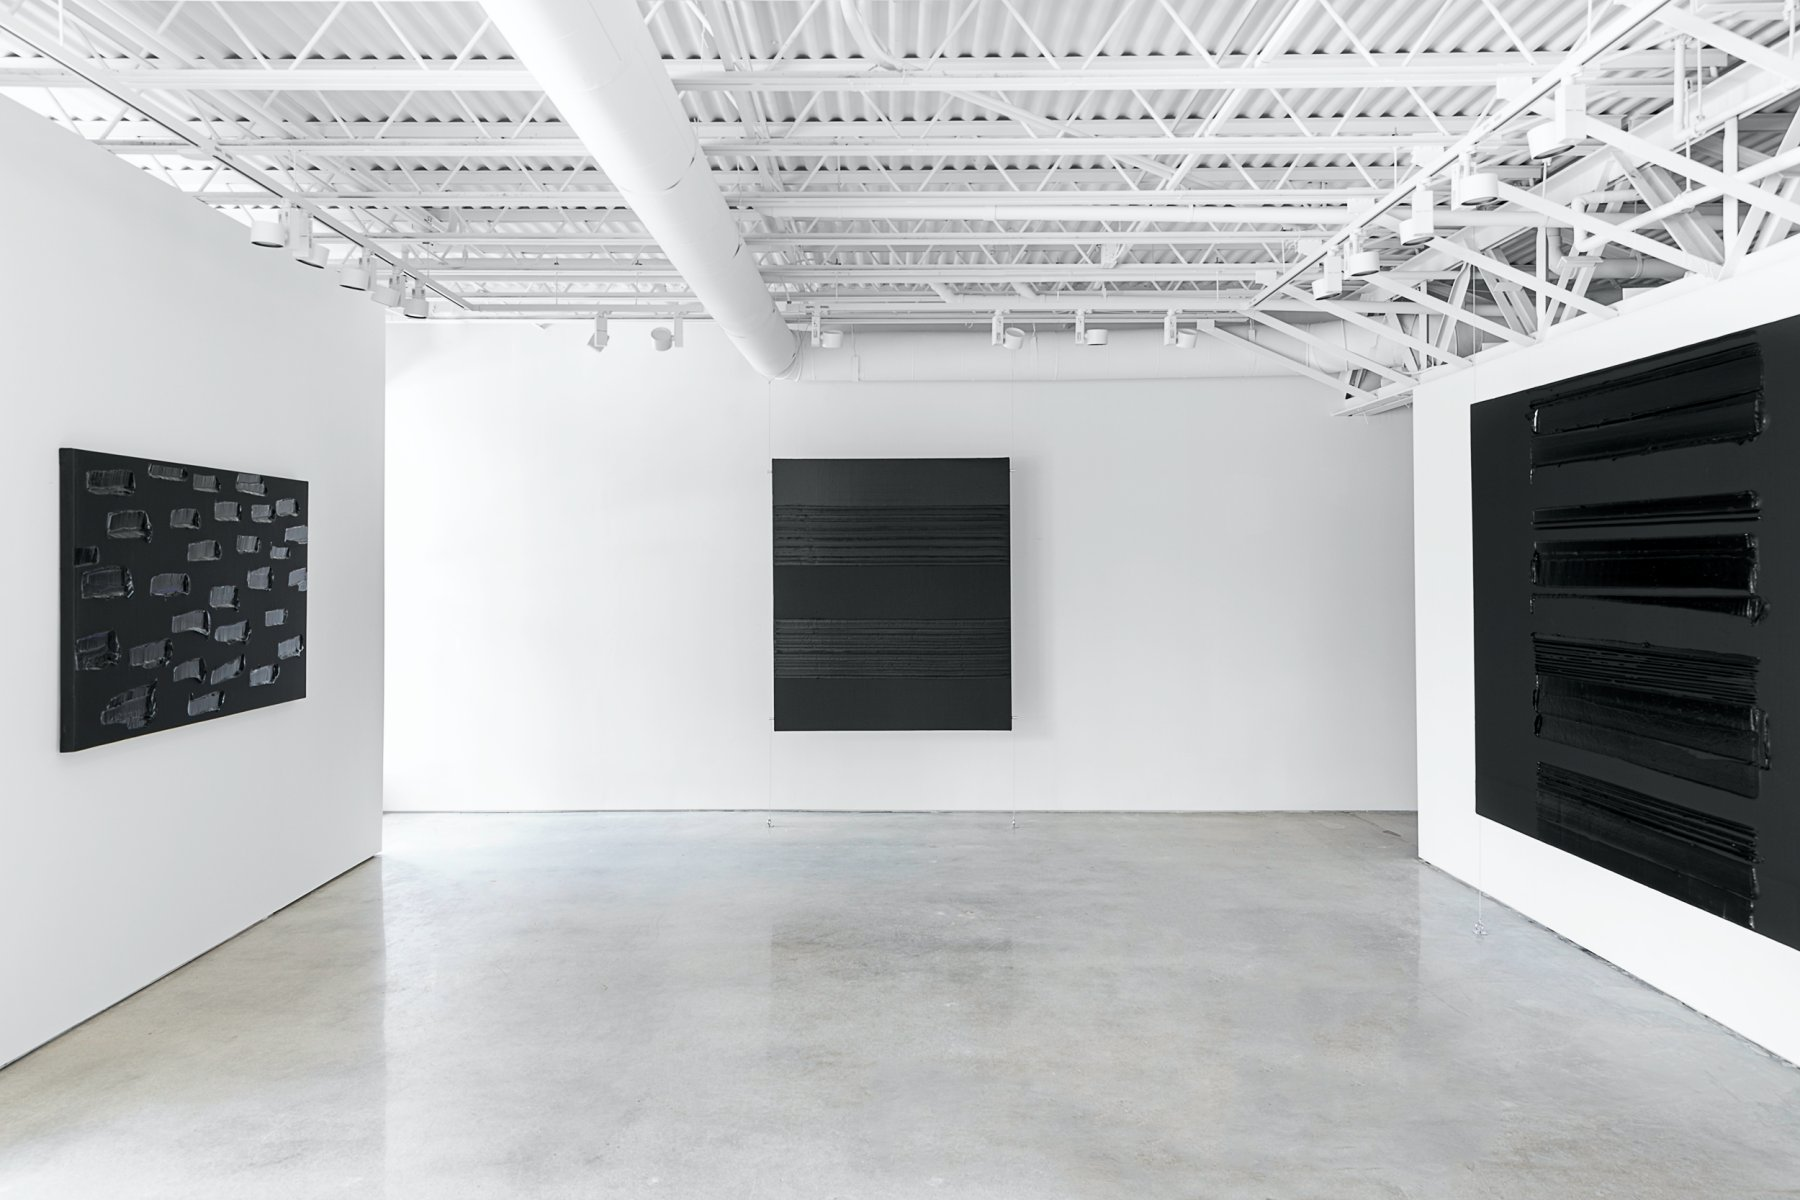 Levy Gorvy Palm Beach Pierre Soulages 1